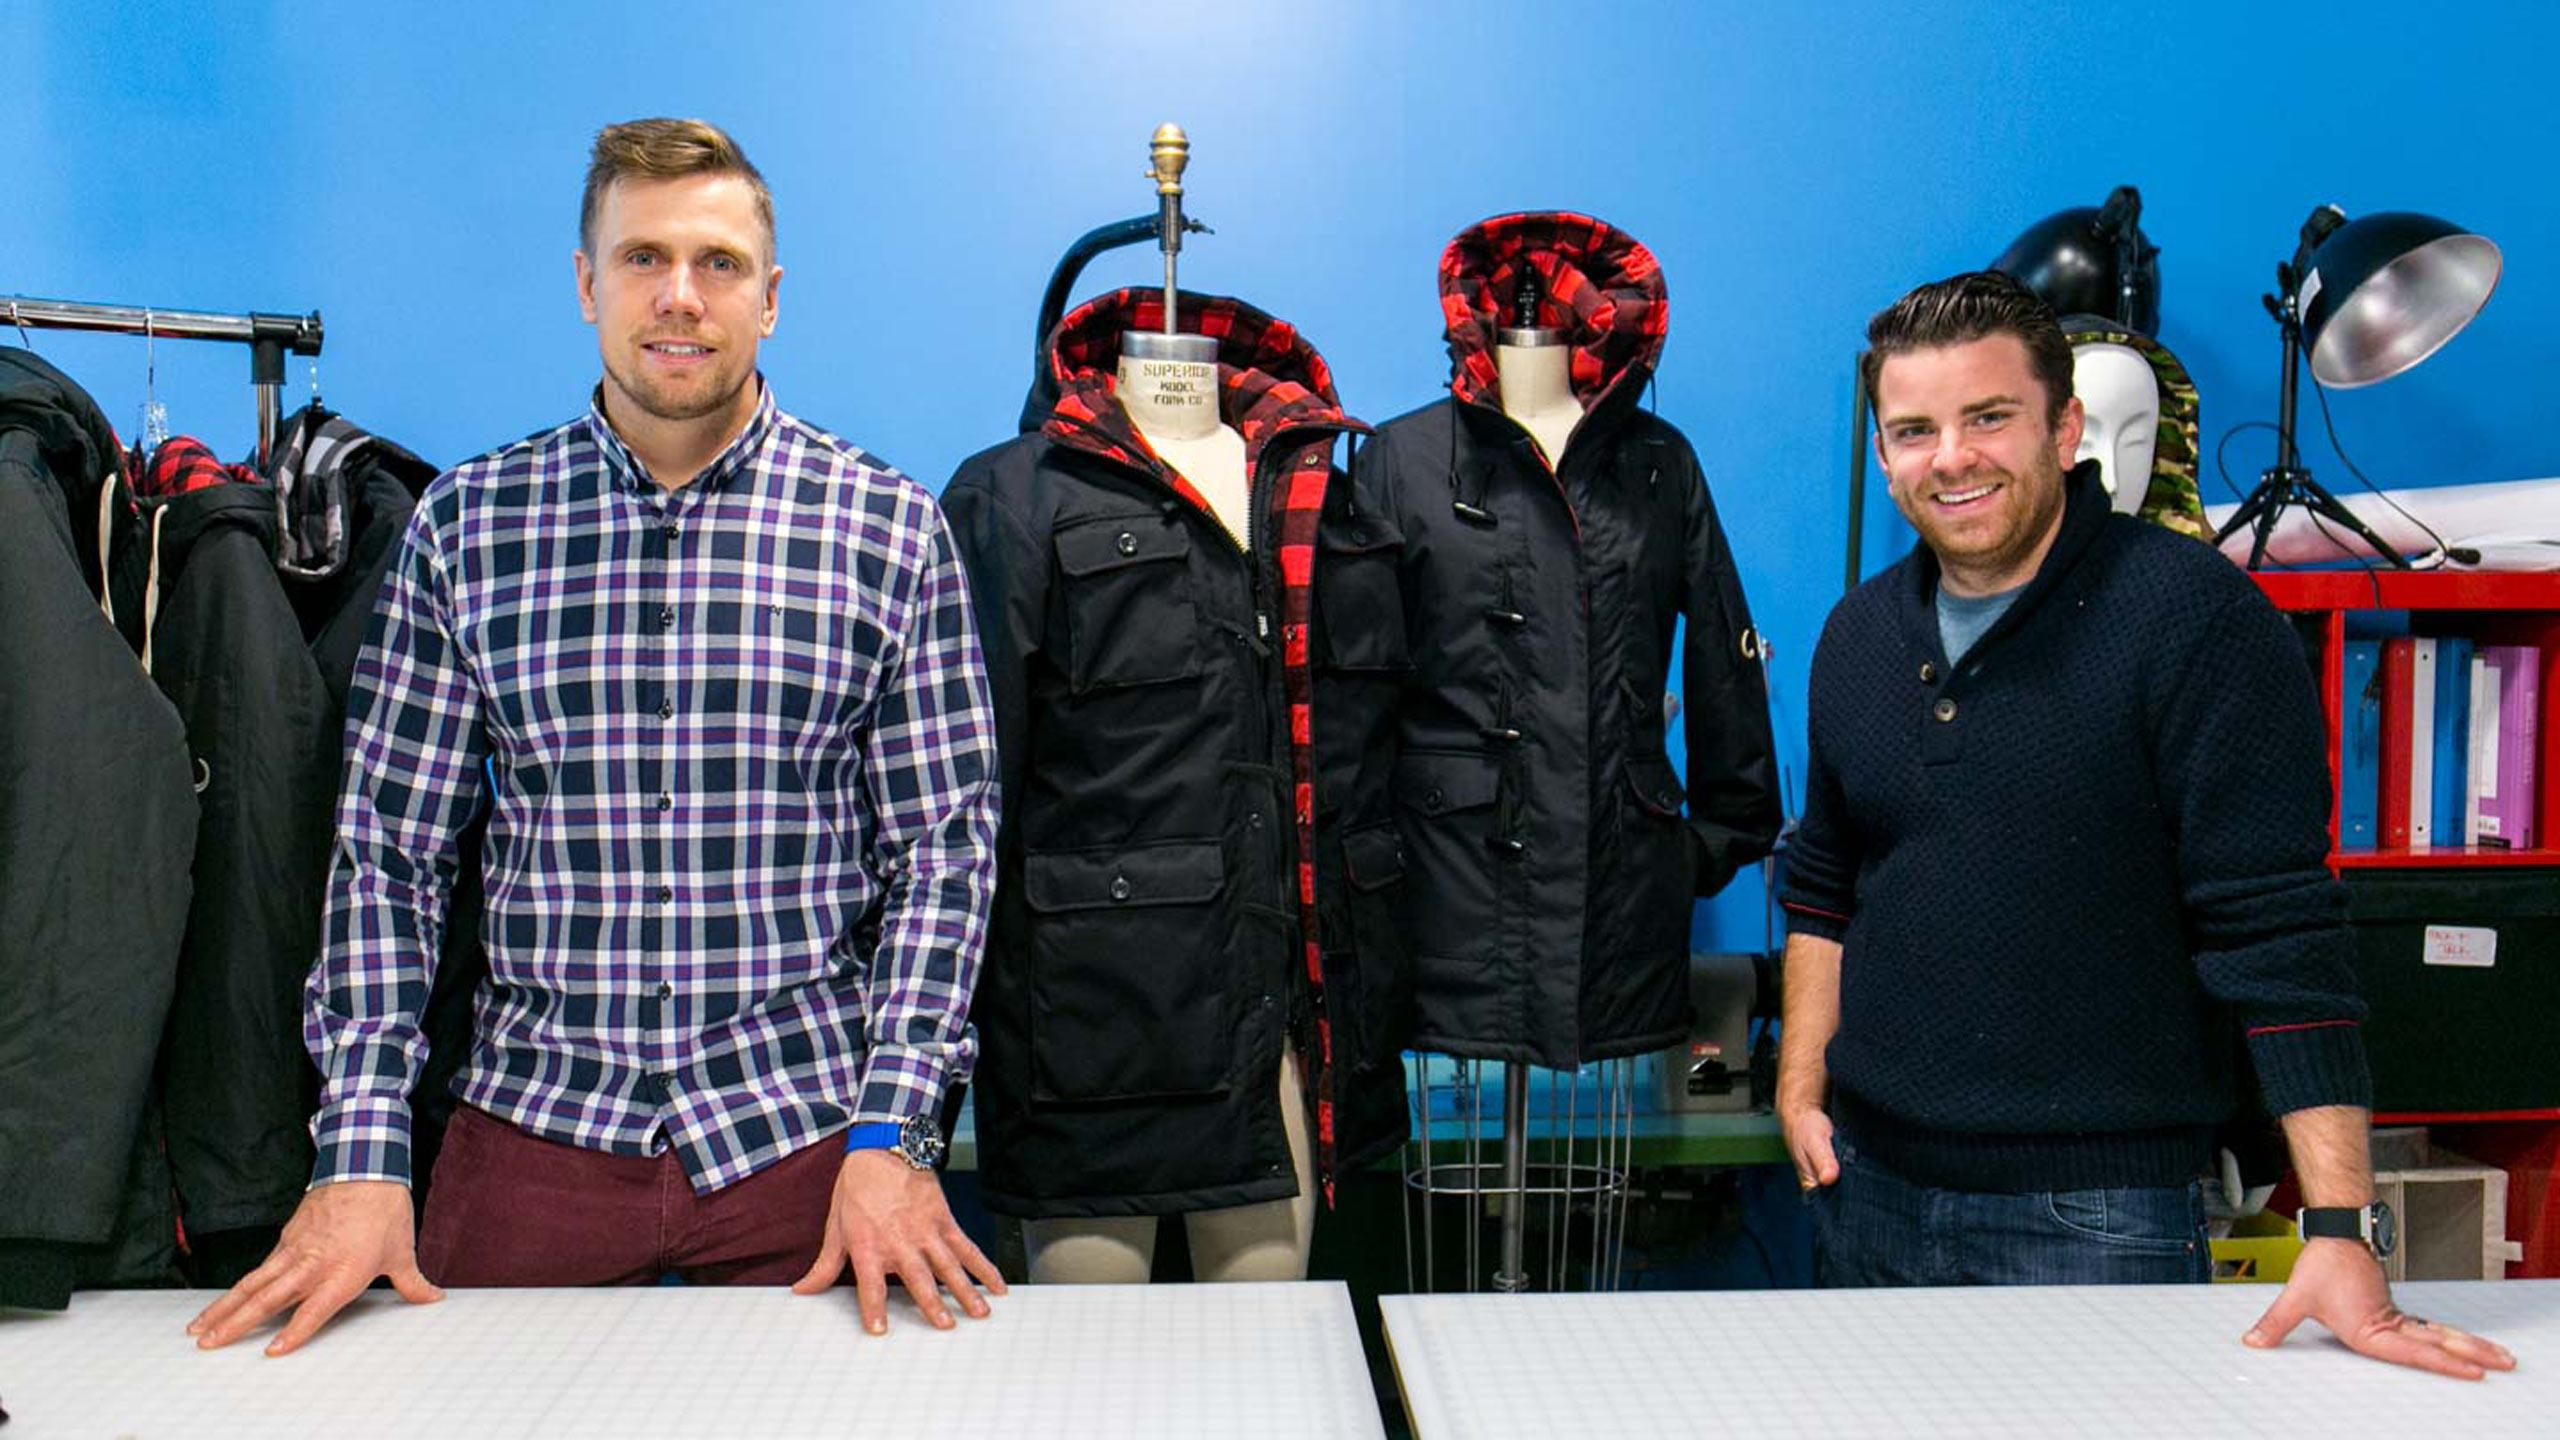 From left, founders of Wully Outerwear, James Yurichuk and Anthony DeBartolo. PHOTO COURTESY WULLY OUTERWEAR